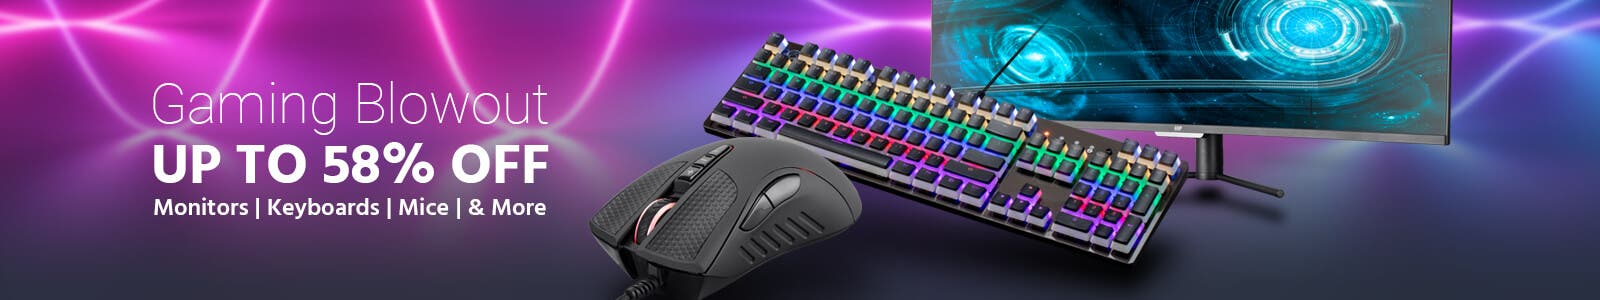 Gaming Blowout, Up To 58% Off! Monitors | Keyboards | Mice | & More! Shop Now